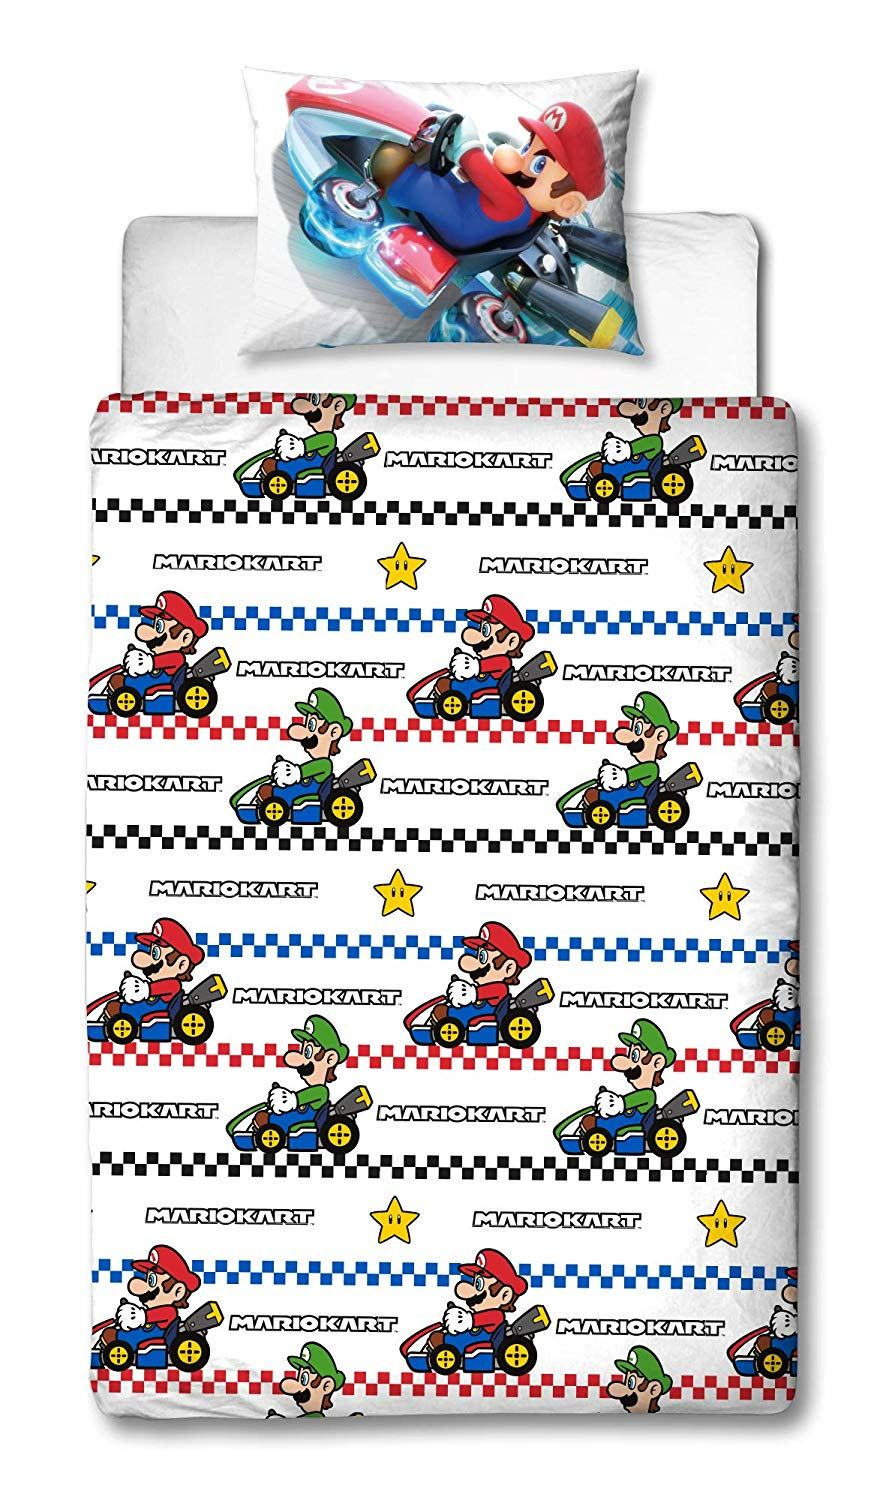 Official-Nintendo-Super-Mario-Licensed-Duvet-Covers-Single-Double-Odyssey-Maker thumbnail 10